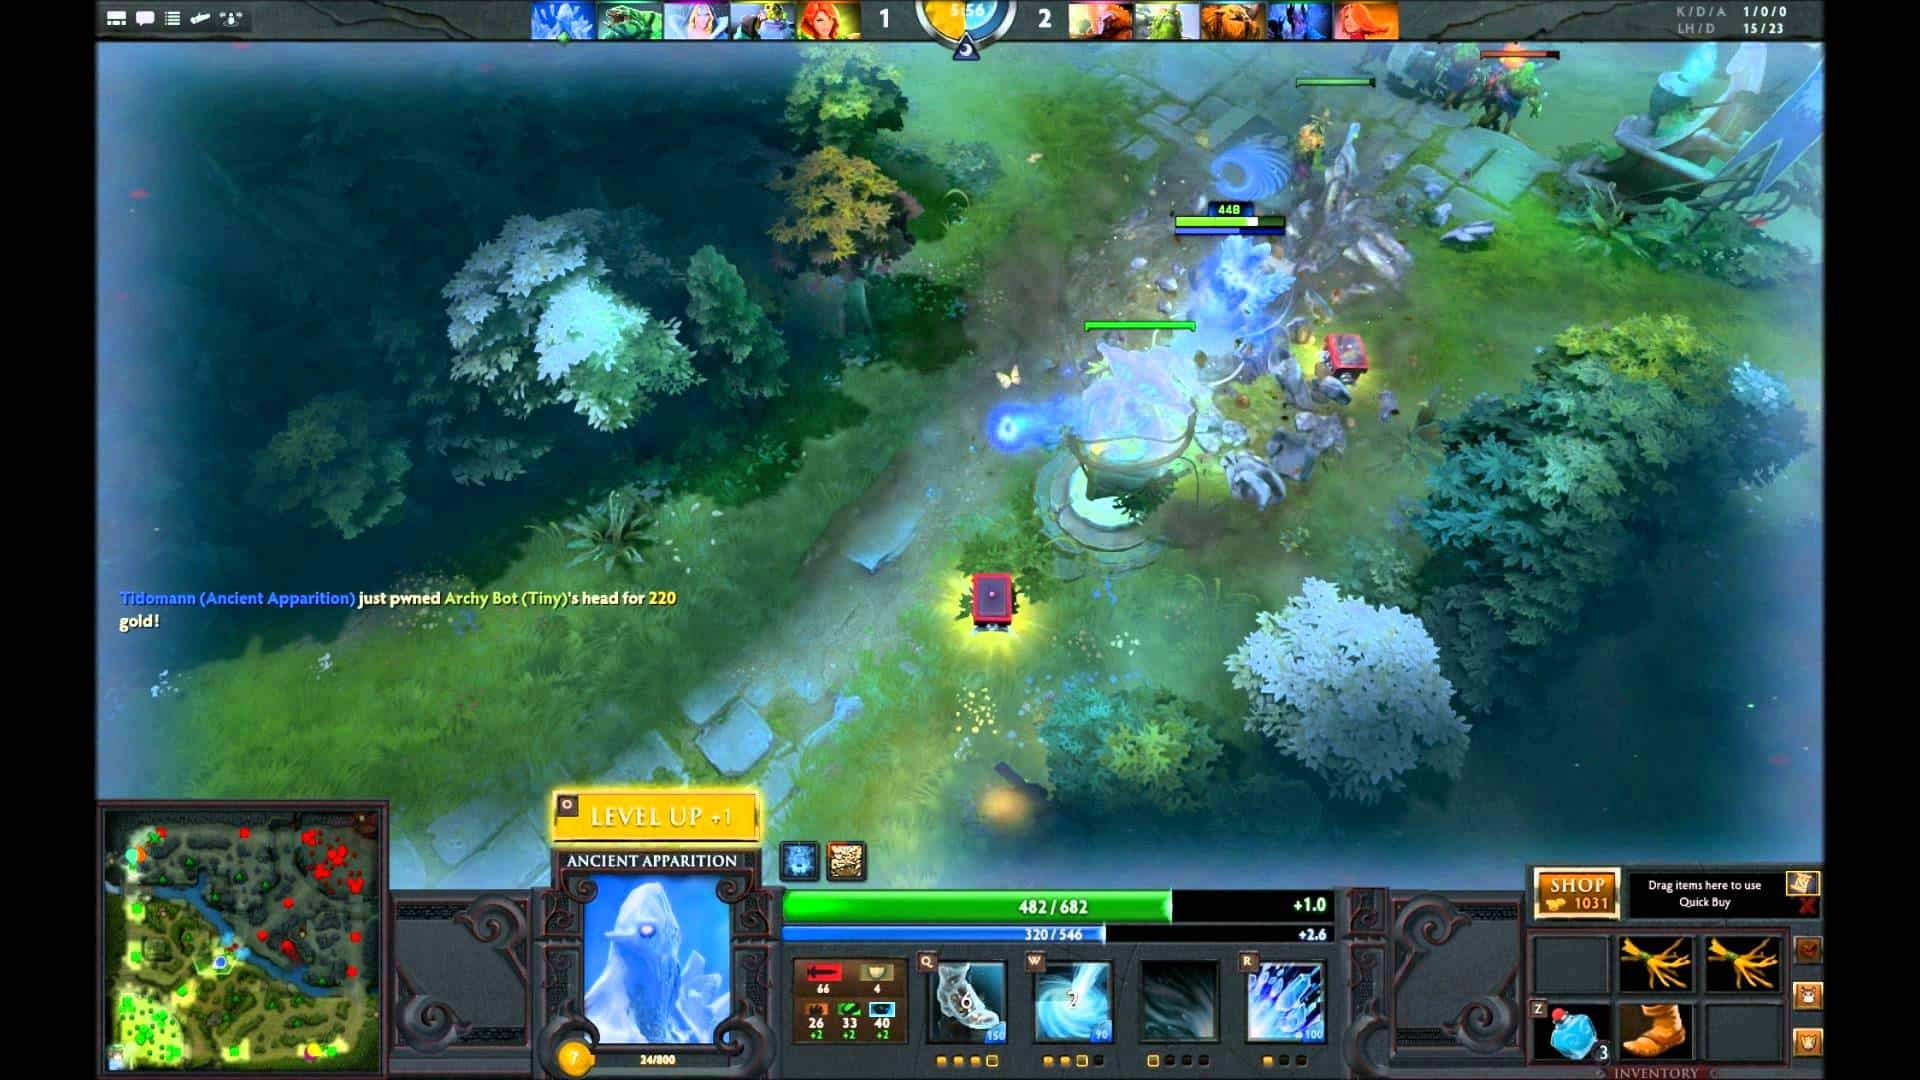 Dota 2 patch and bug fixes for March 28th